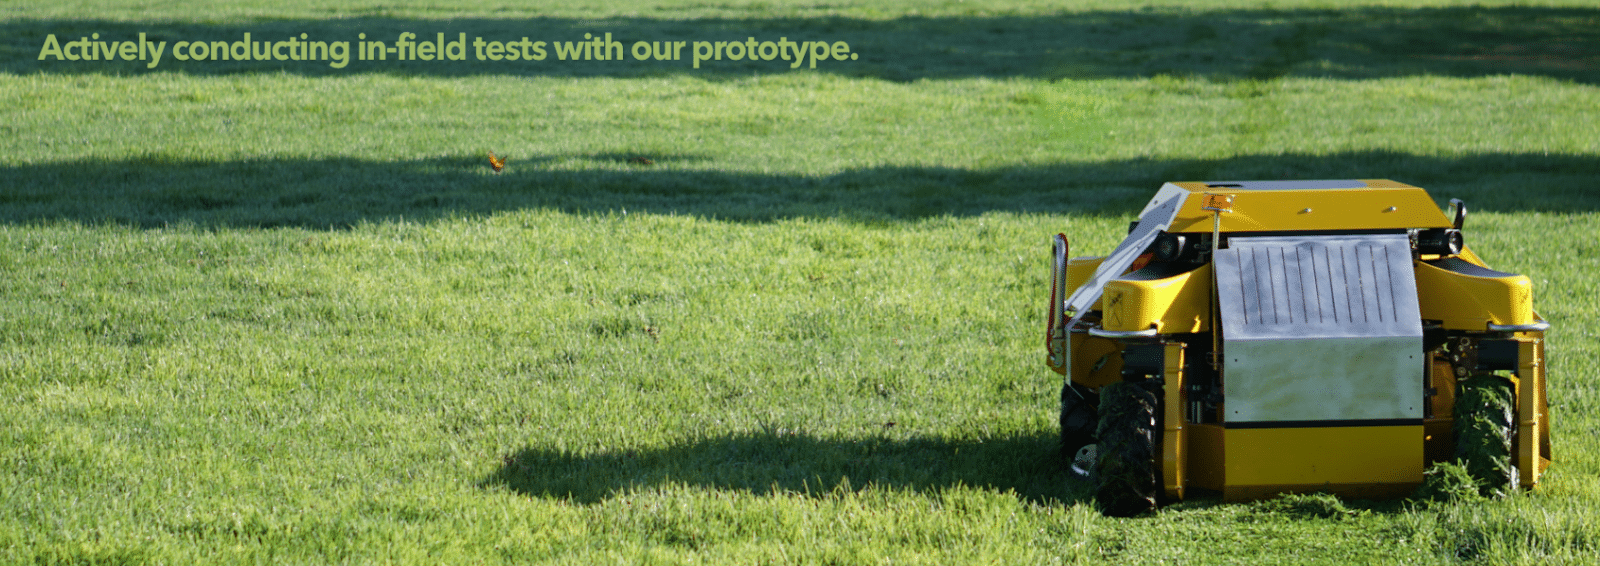 Deal to Watch: Autonomous Lawn Mowers to Save Millions